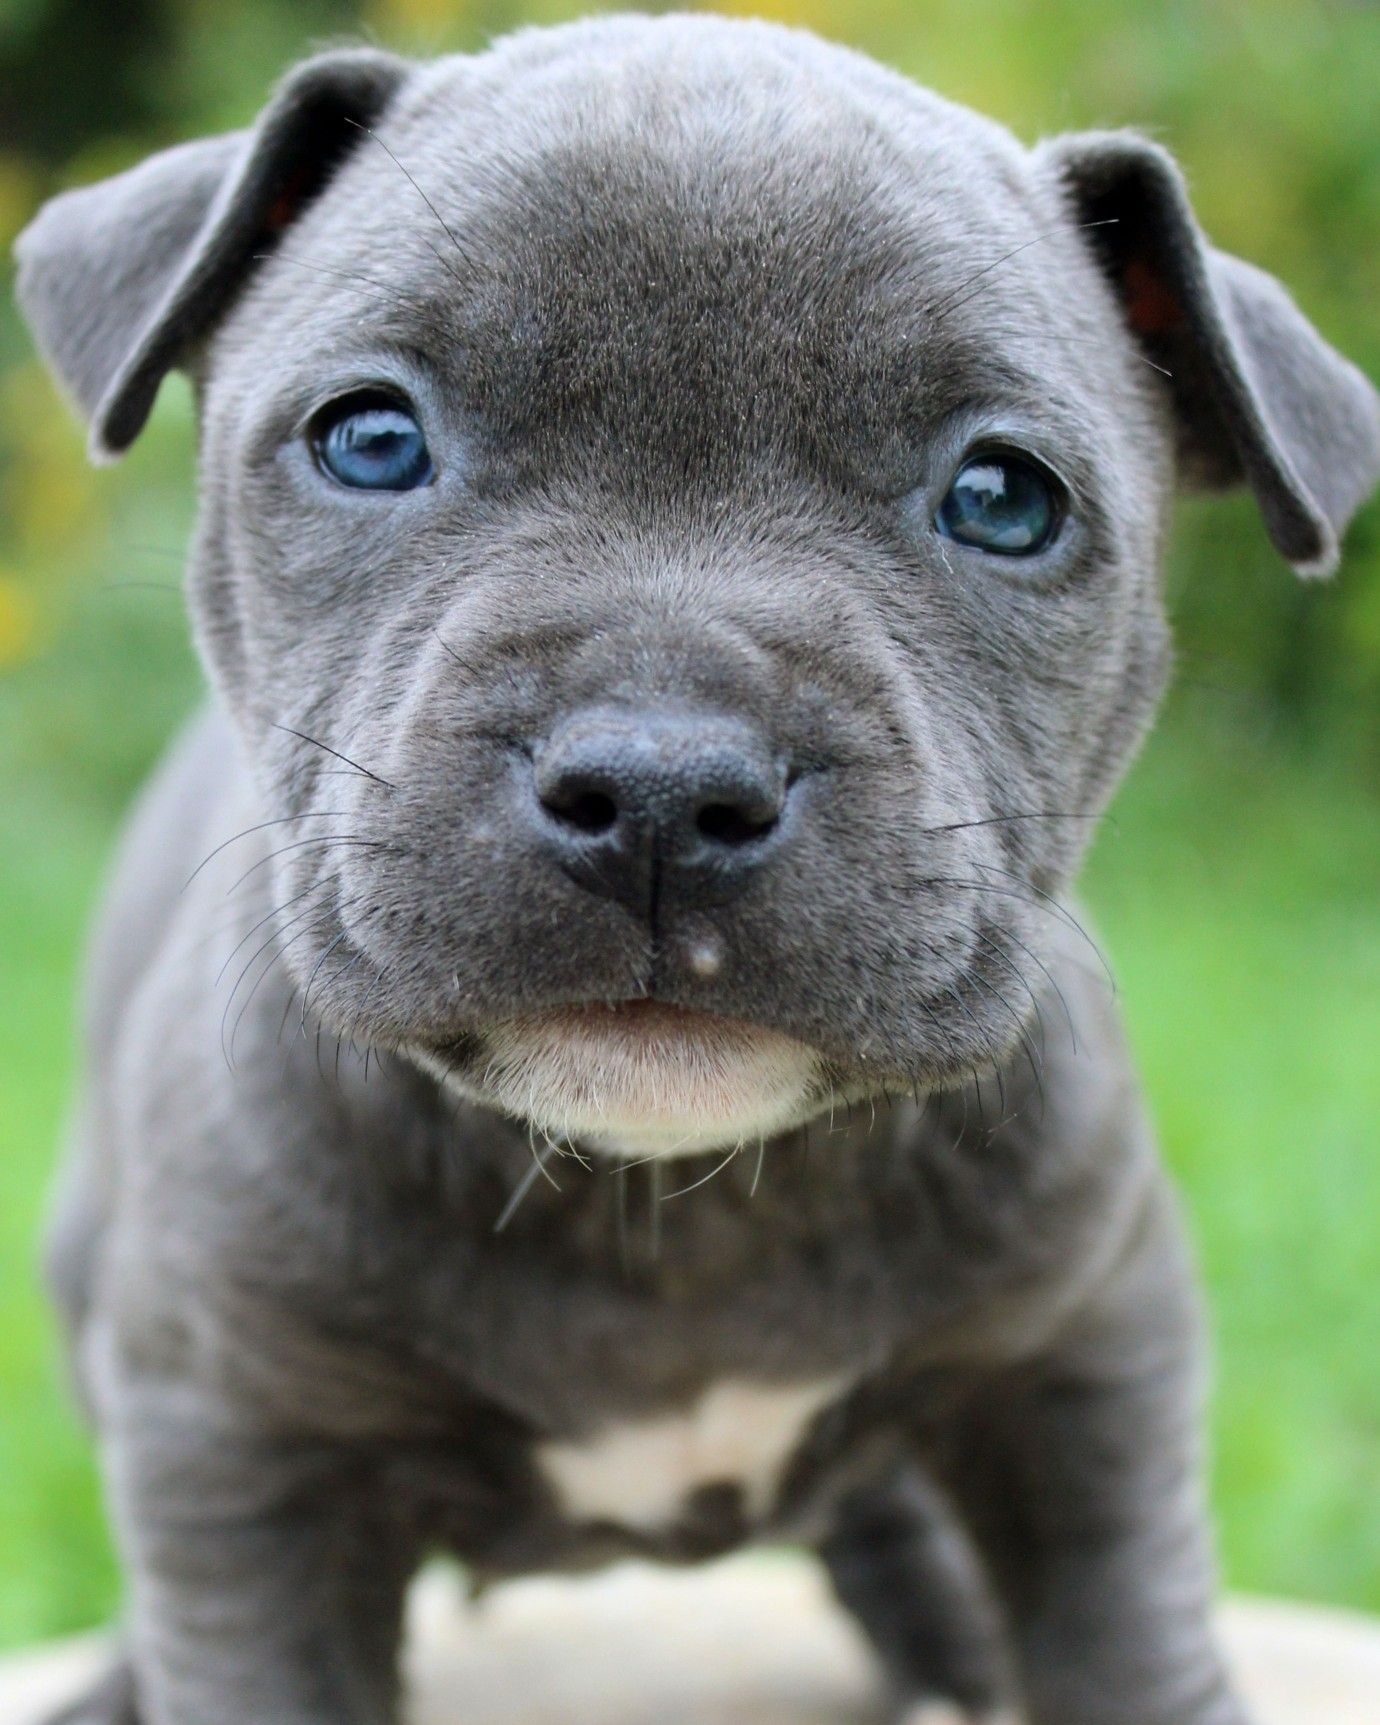 Here Is A Photo Of An Amazing Blue Pitbull Puppy That We Have For